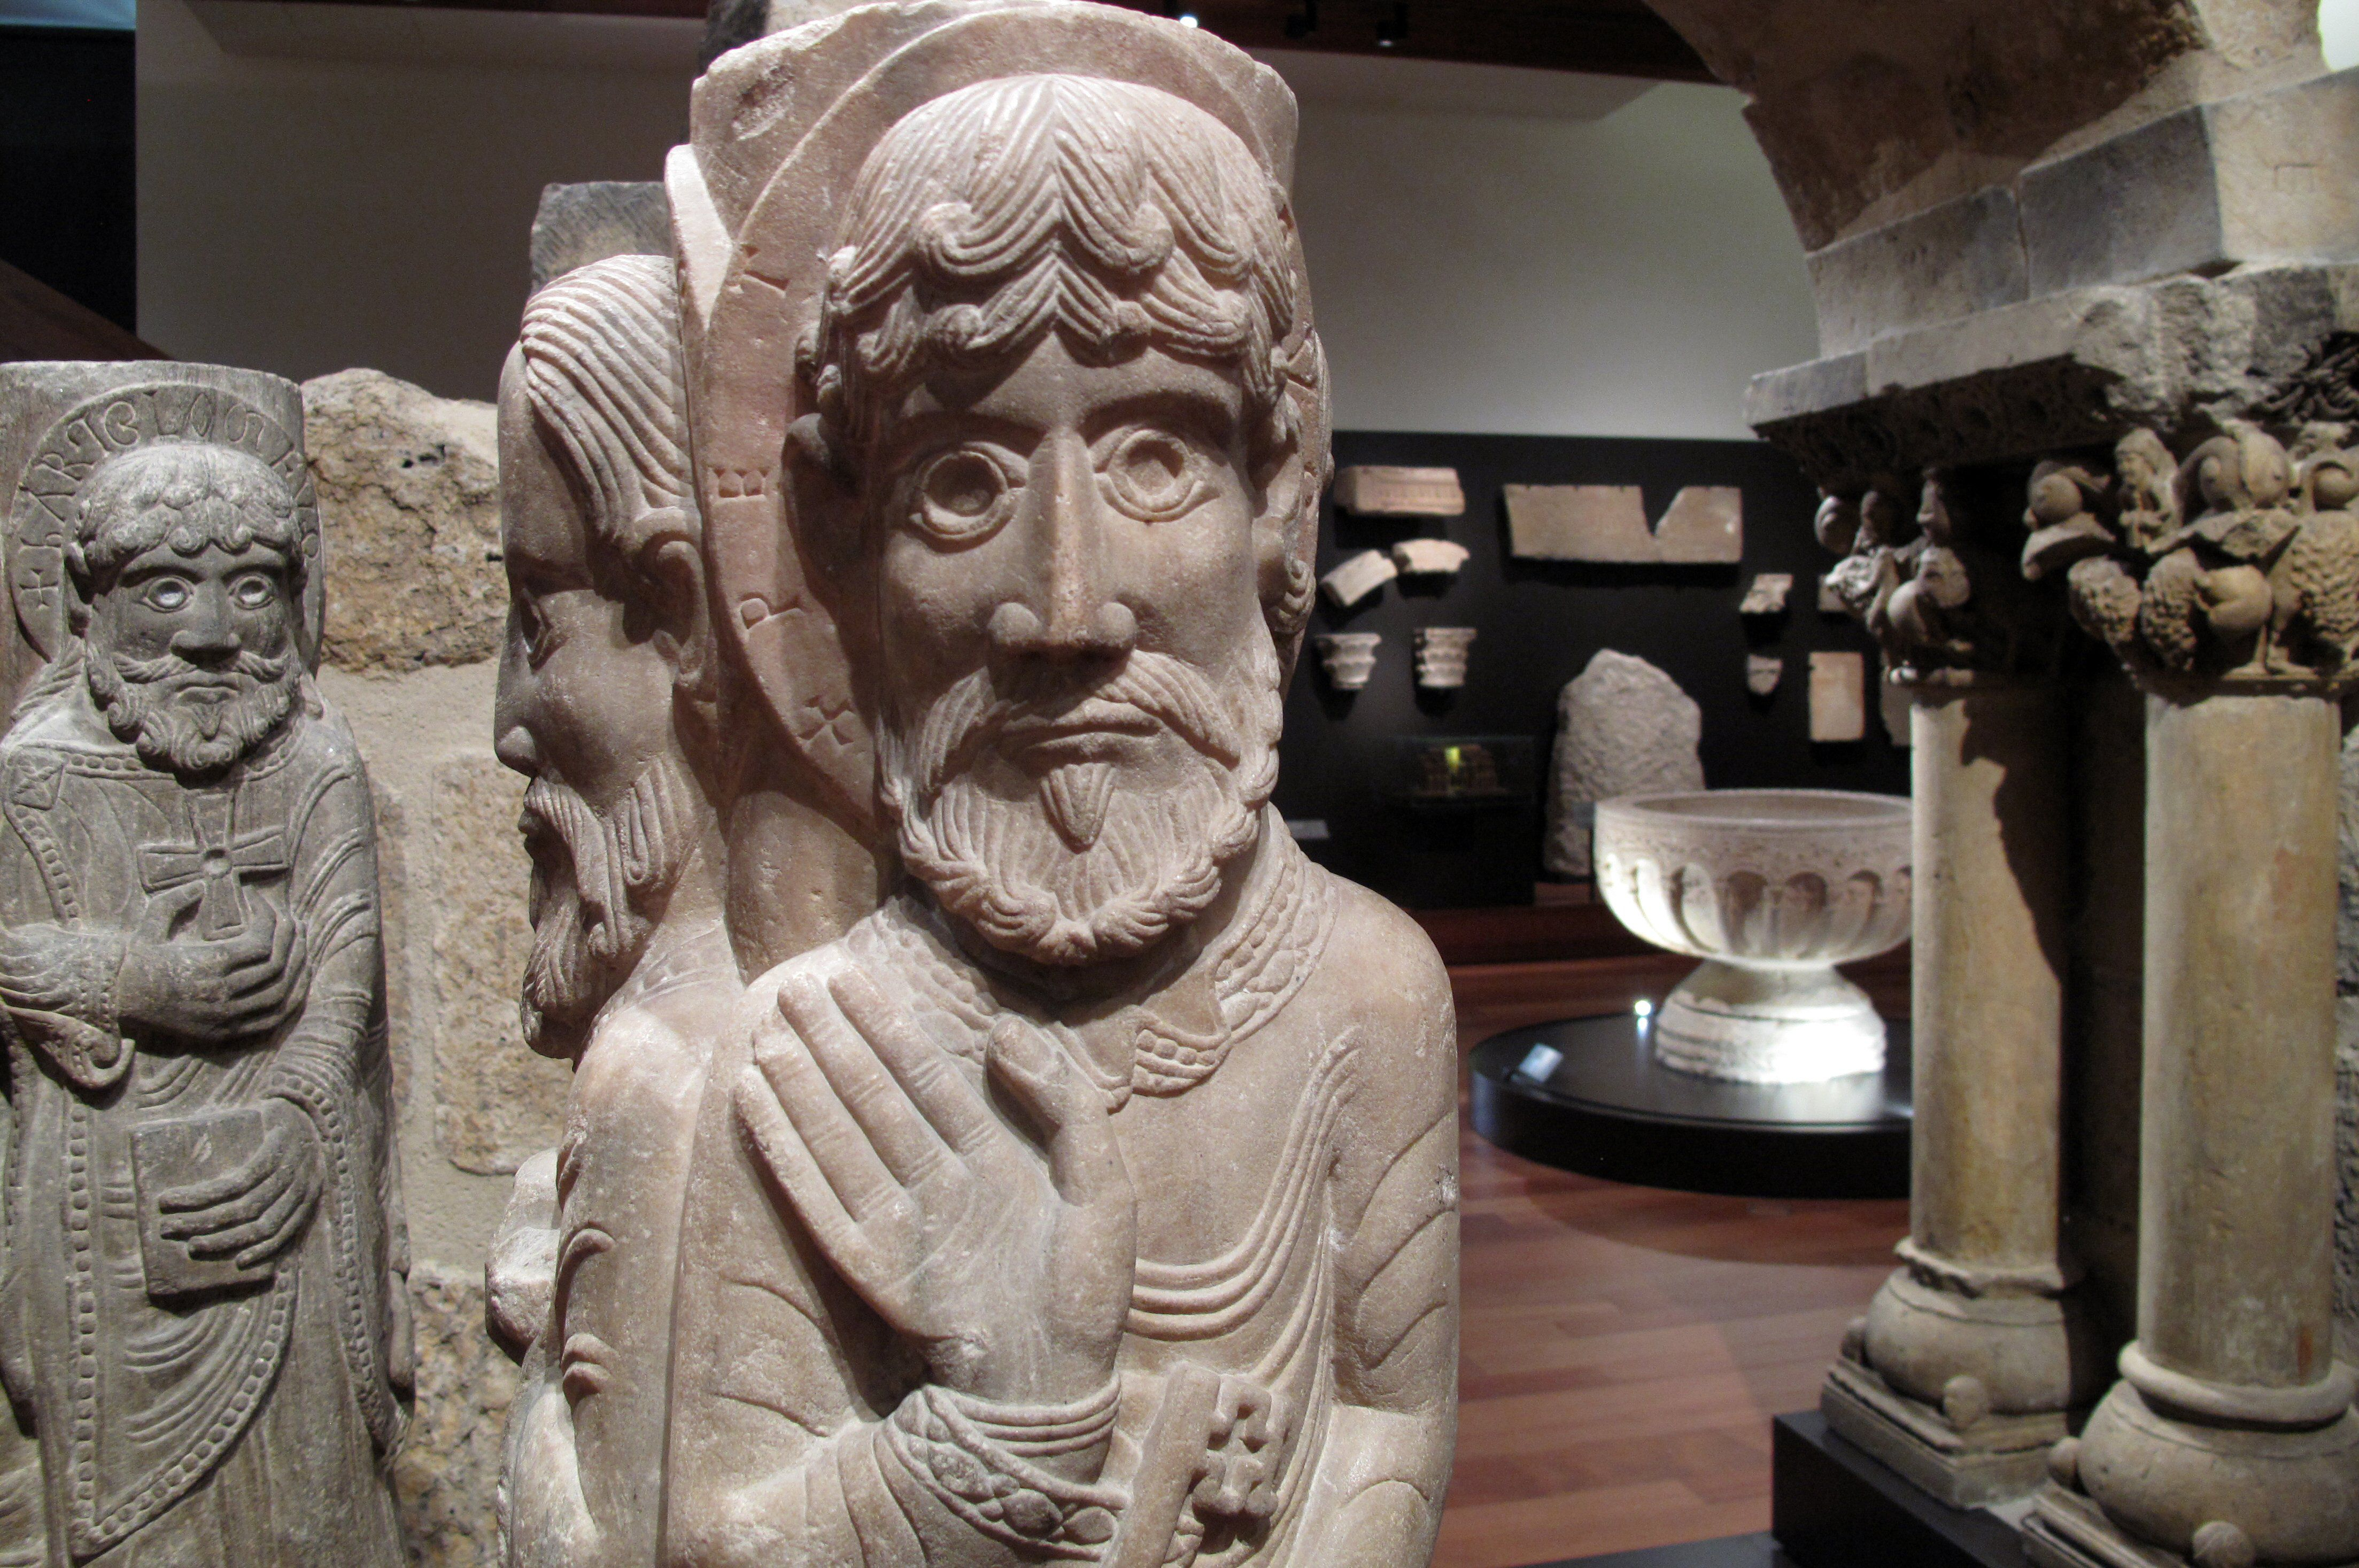 Column Statues and Capitals in the Romanesque Style, c. 1152, in the National Archaeological Museum, Madrid, Spain